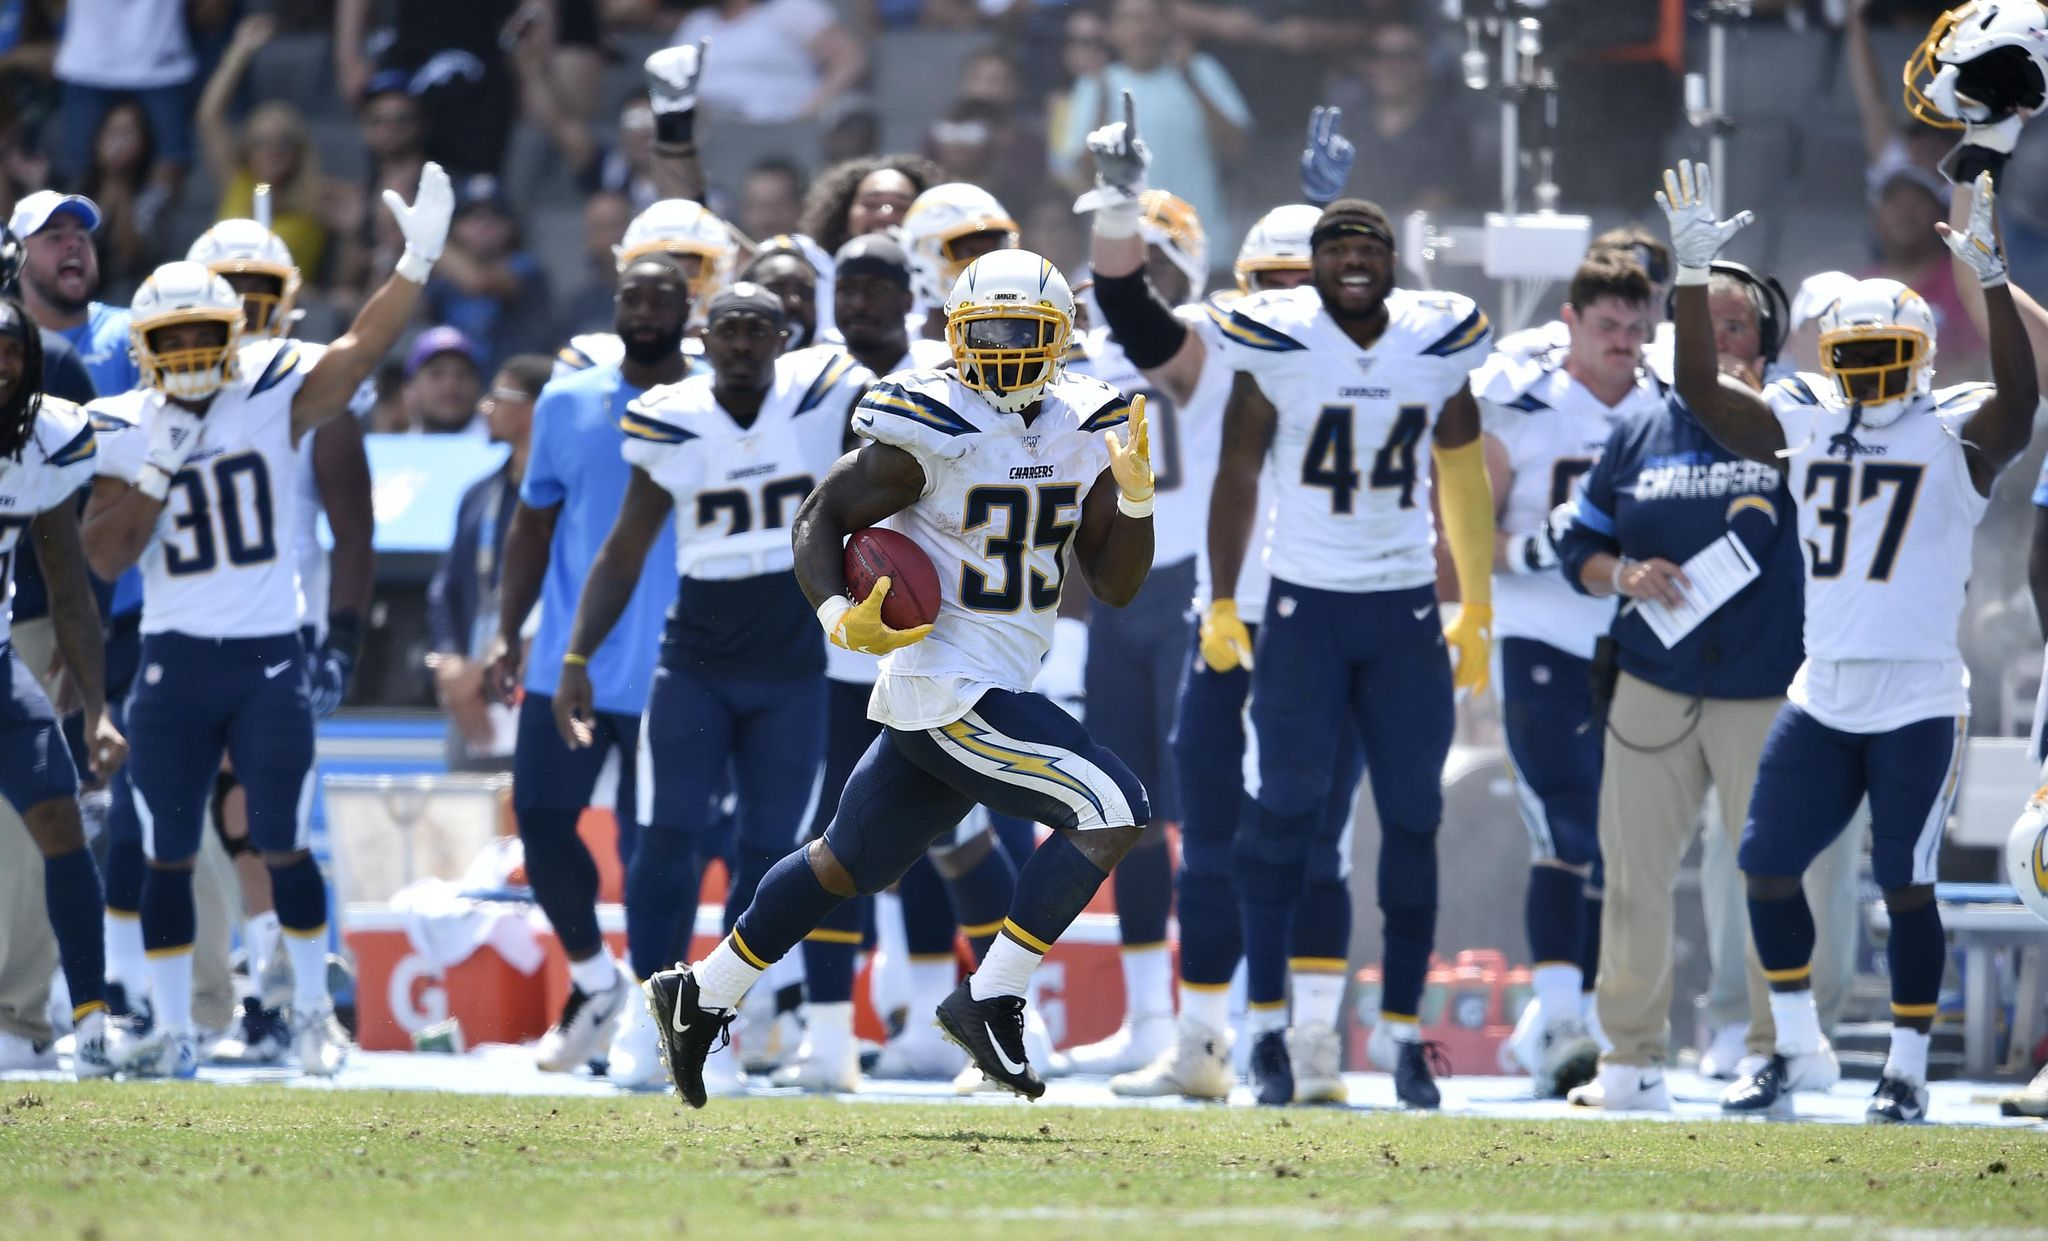 Saints_chargers_football_36554_s2048x1241